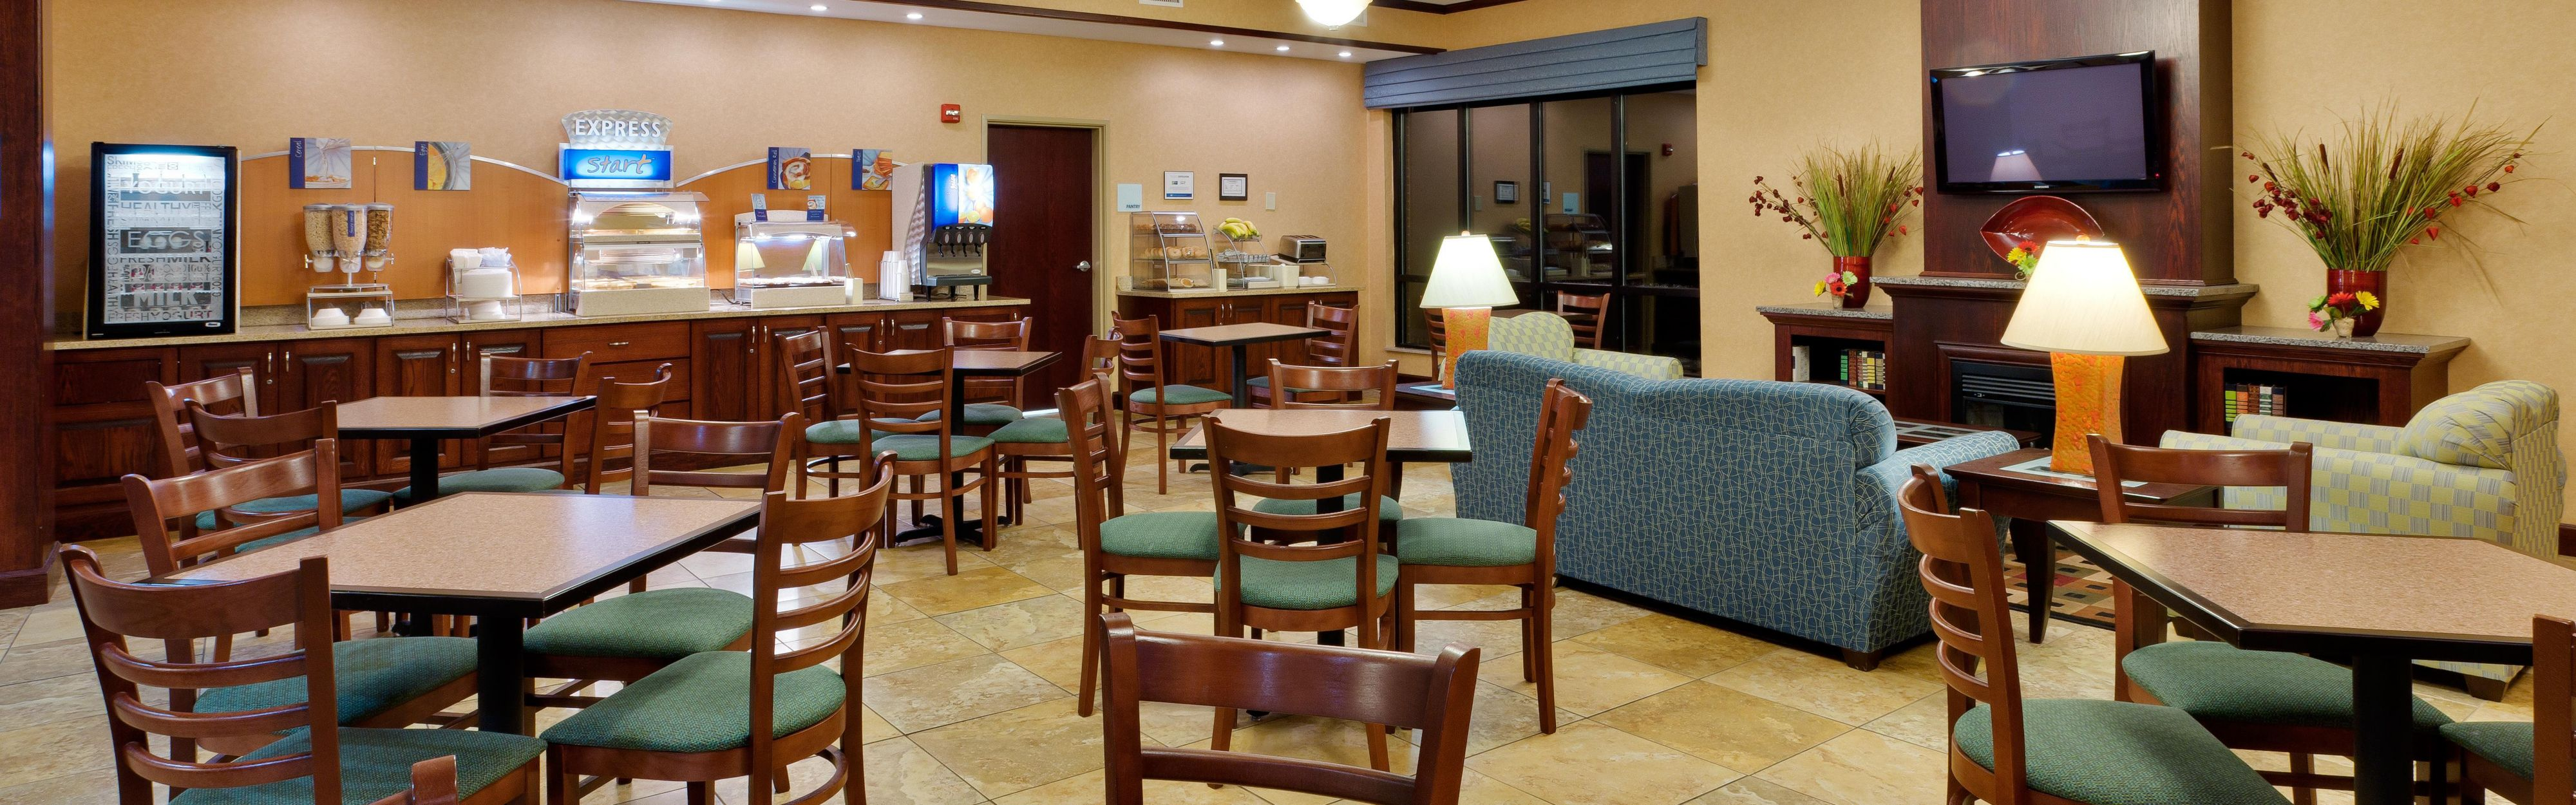 Holiday Inn Express & Suites White Haven - Poconos image 3